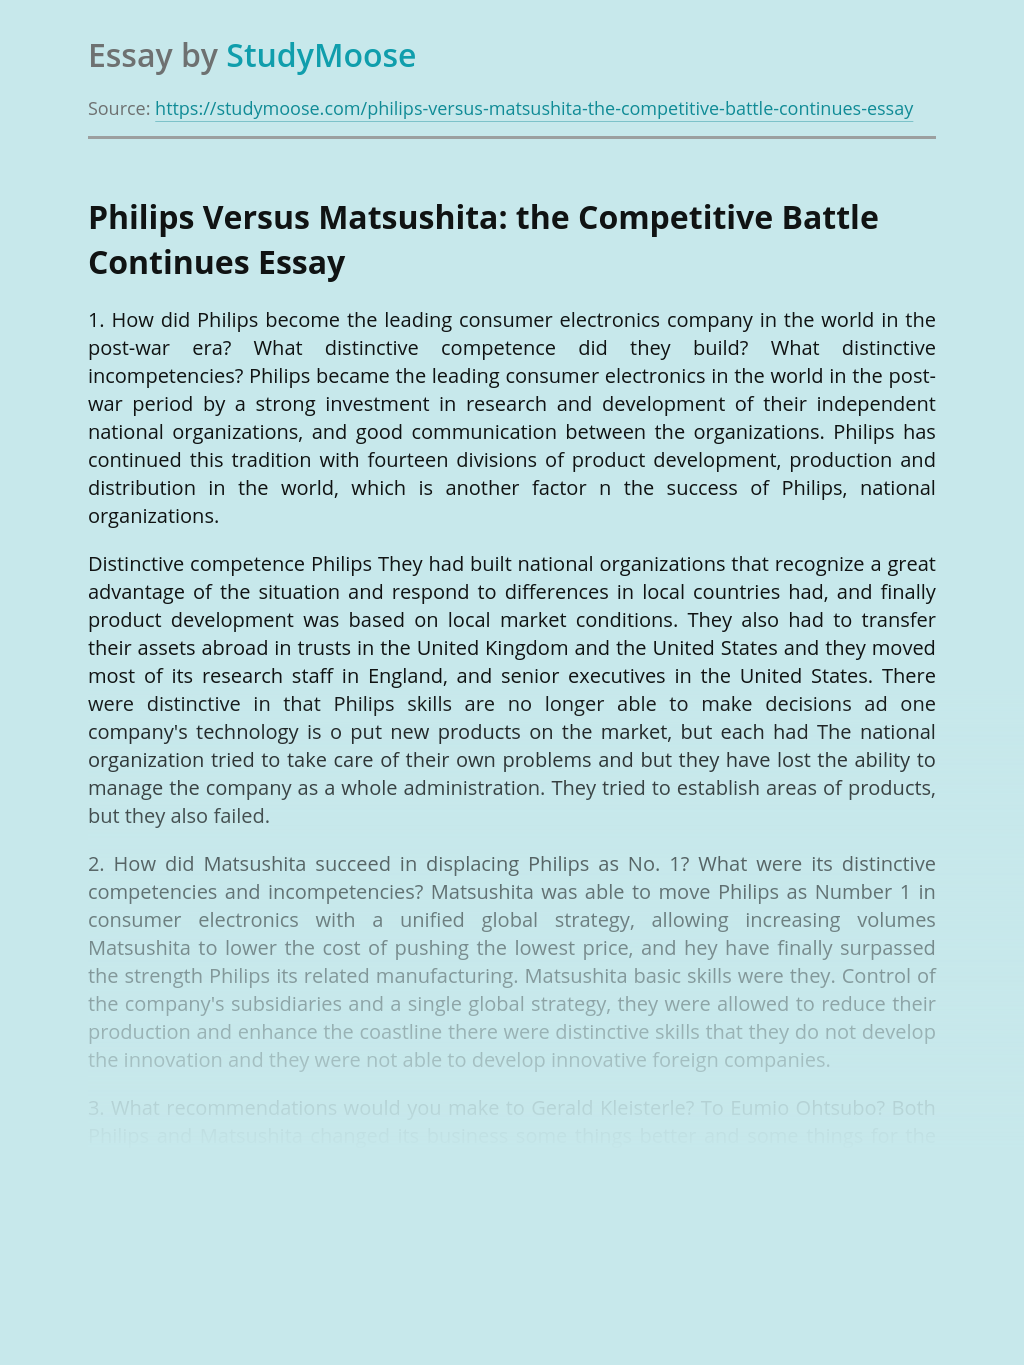 Competitive Battle of Philips and Matsushita Companies